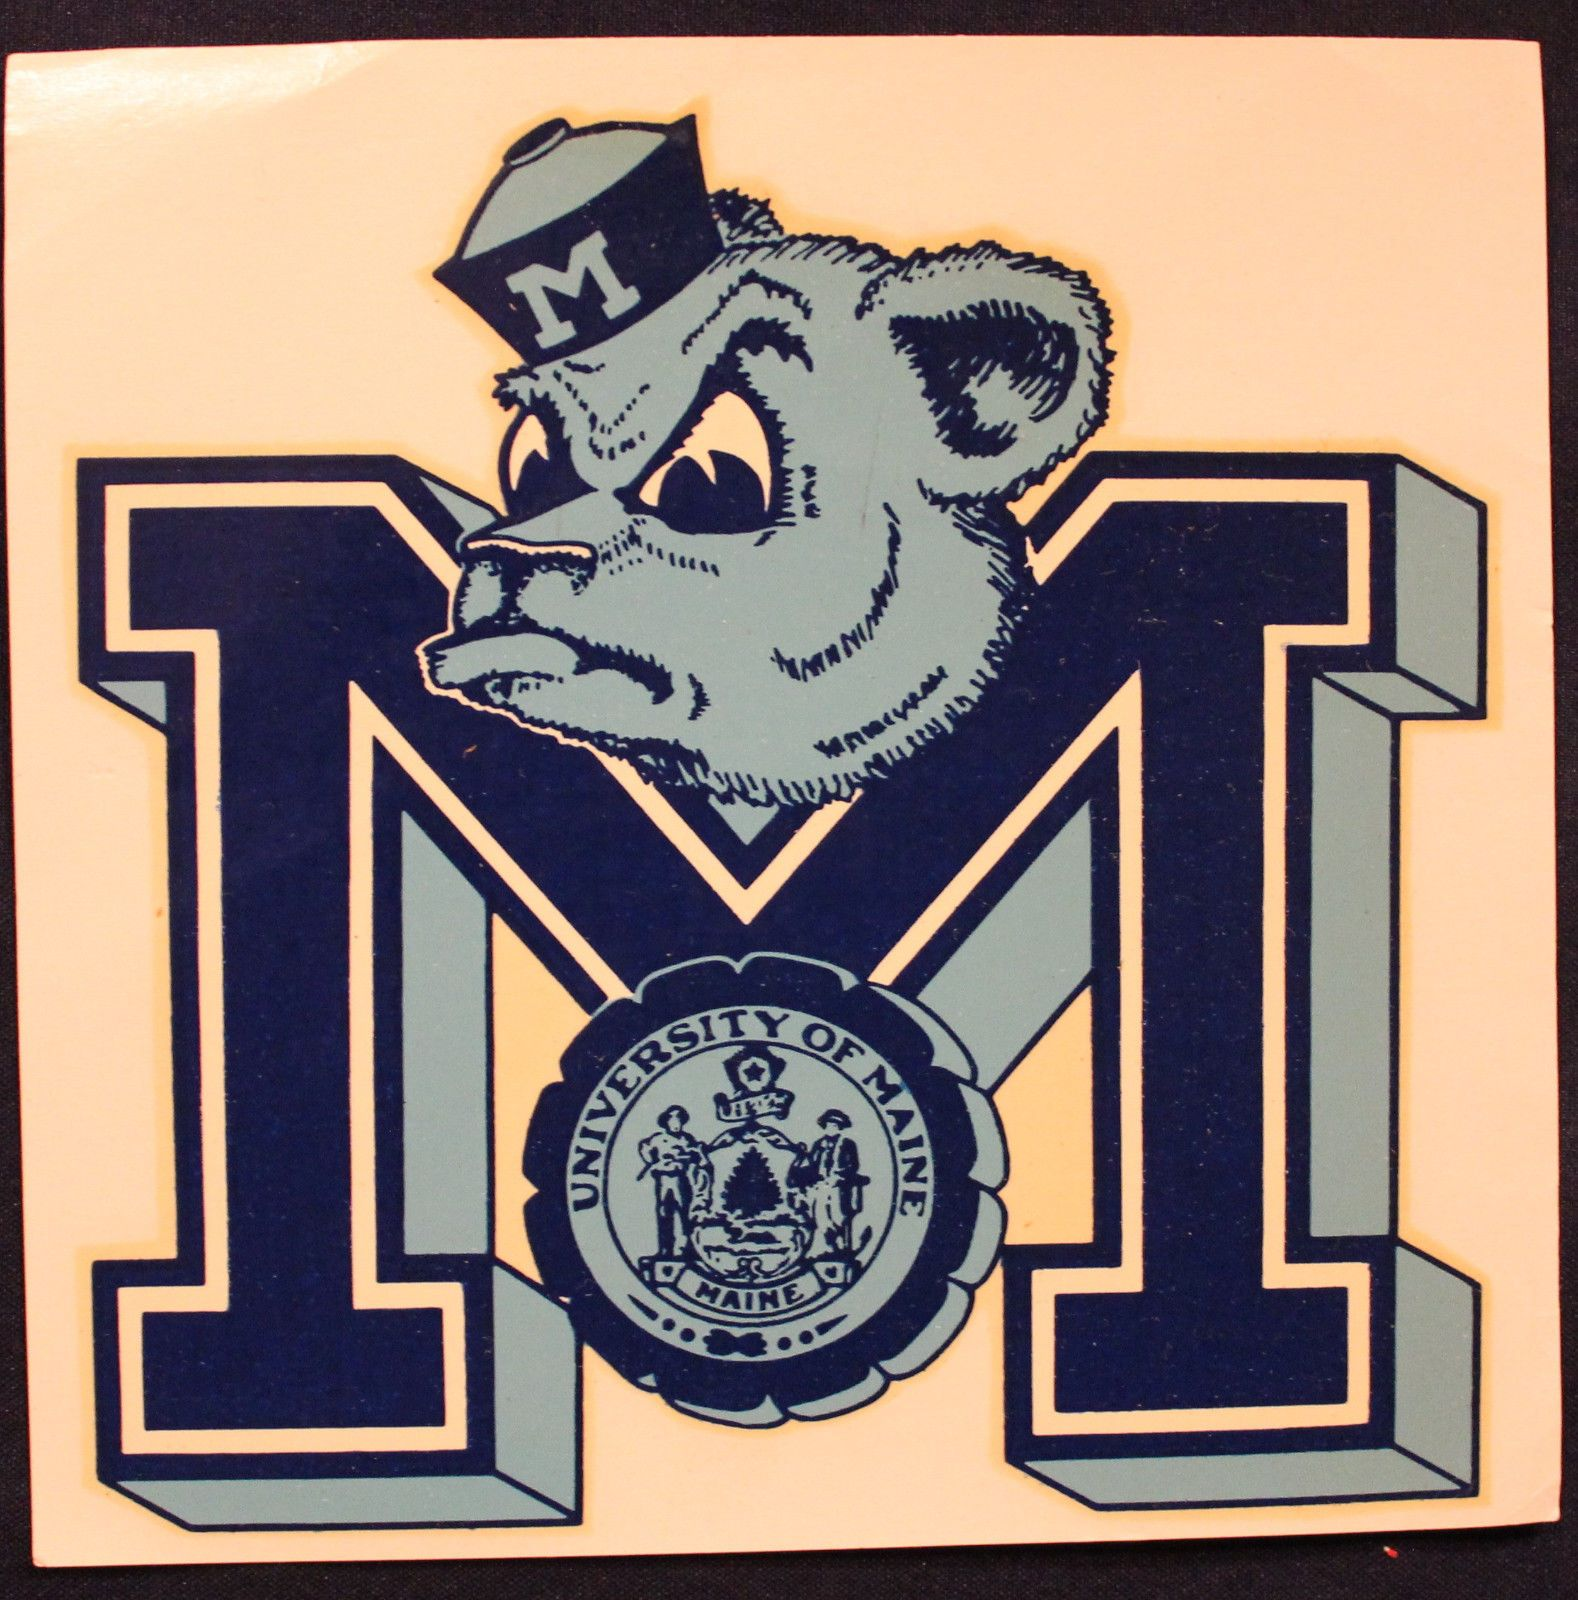 Original vintage university of maine black bear decal sticker